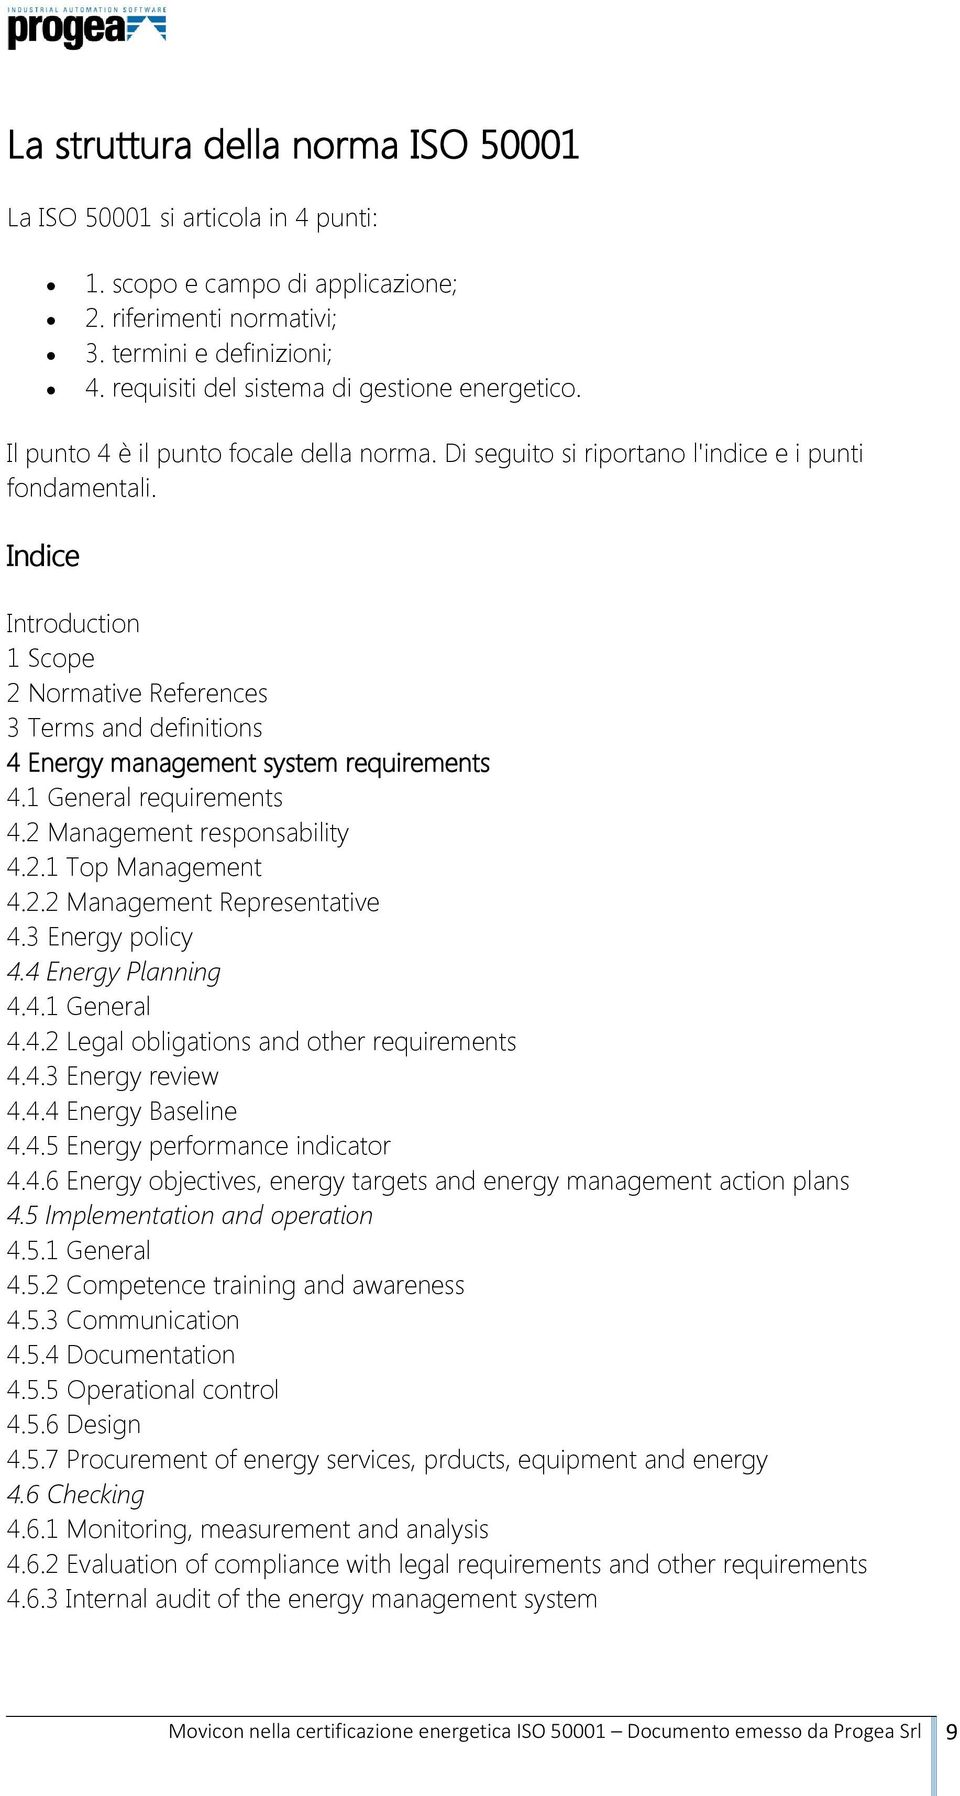 Indice Introduction 1 Scope 2 Normative References 3 Terms and definitions 4 Energy management system requirements 4.1 General requirements 4.2 Management responsability 4.2.1 Top Management 4.2.2 Management Representative 4.